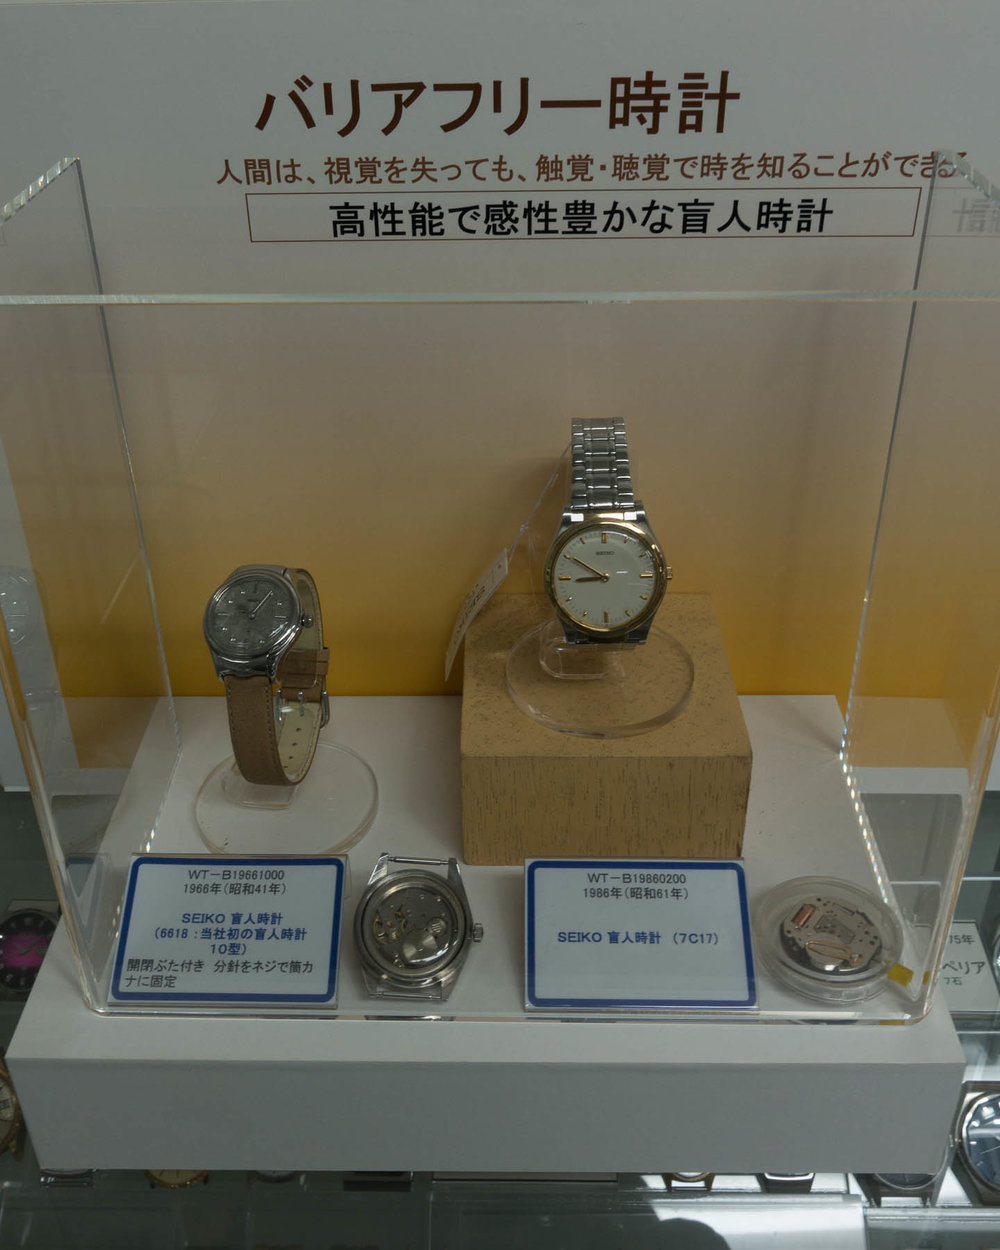 Watches for visually impaired